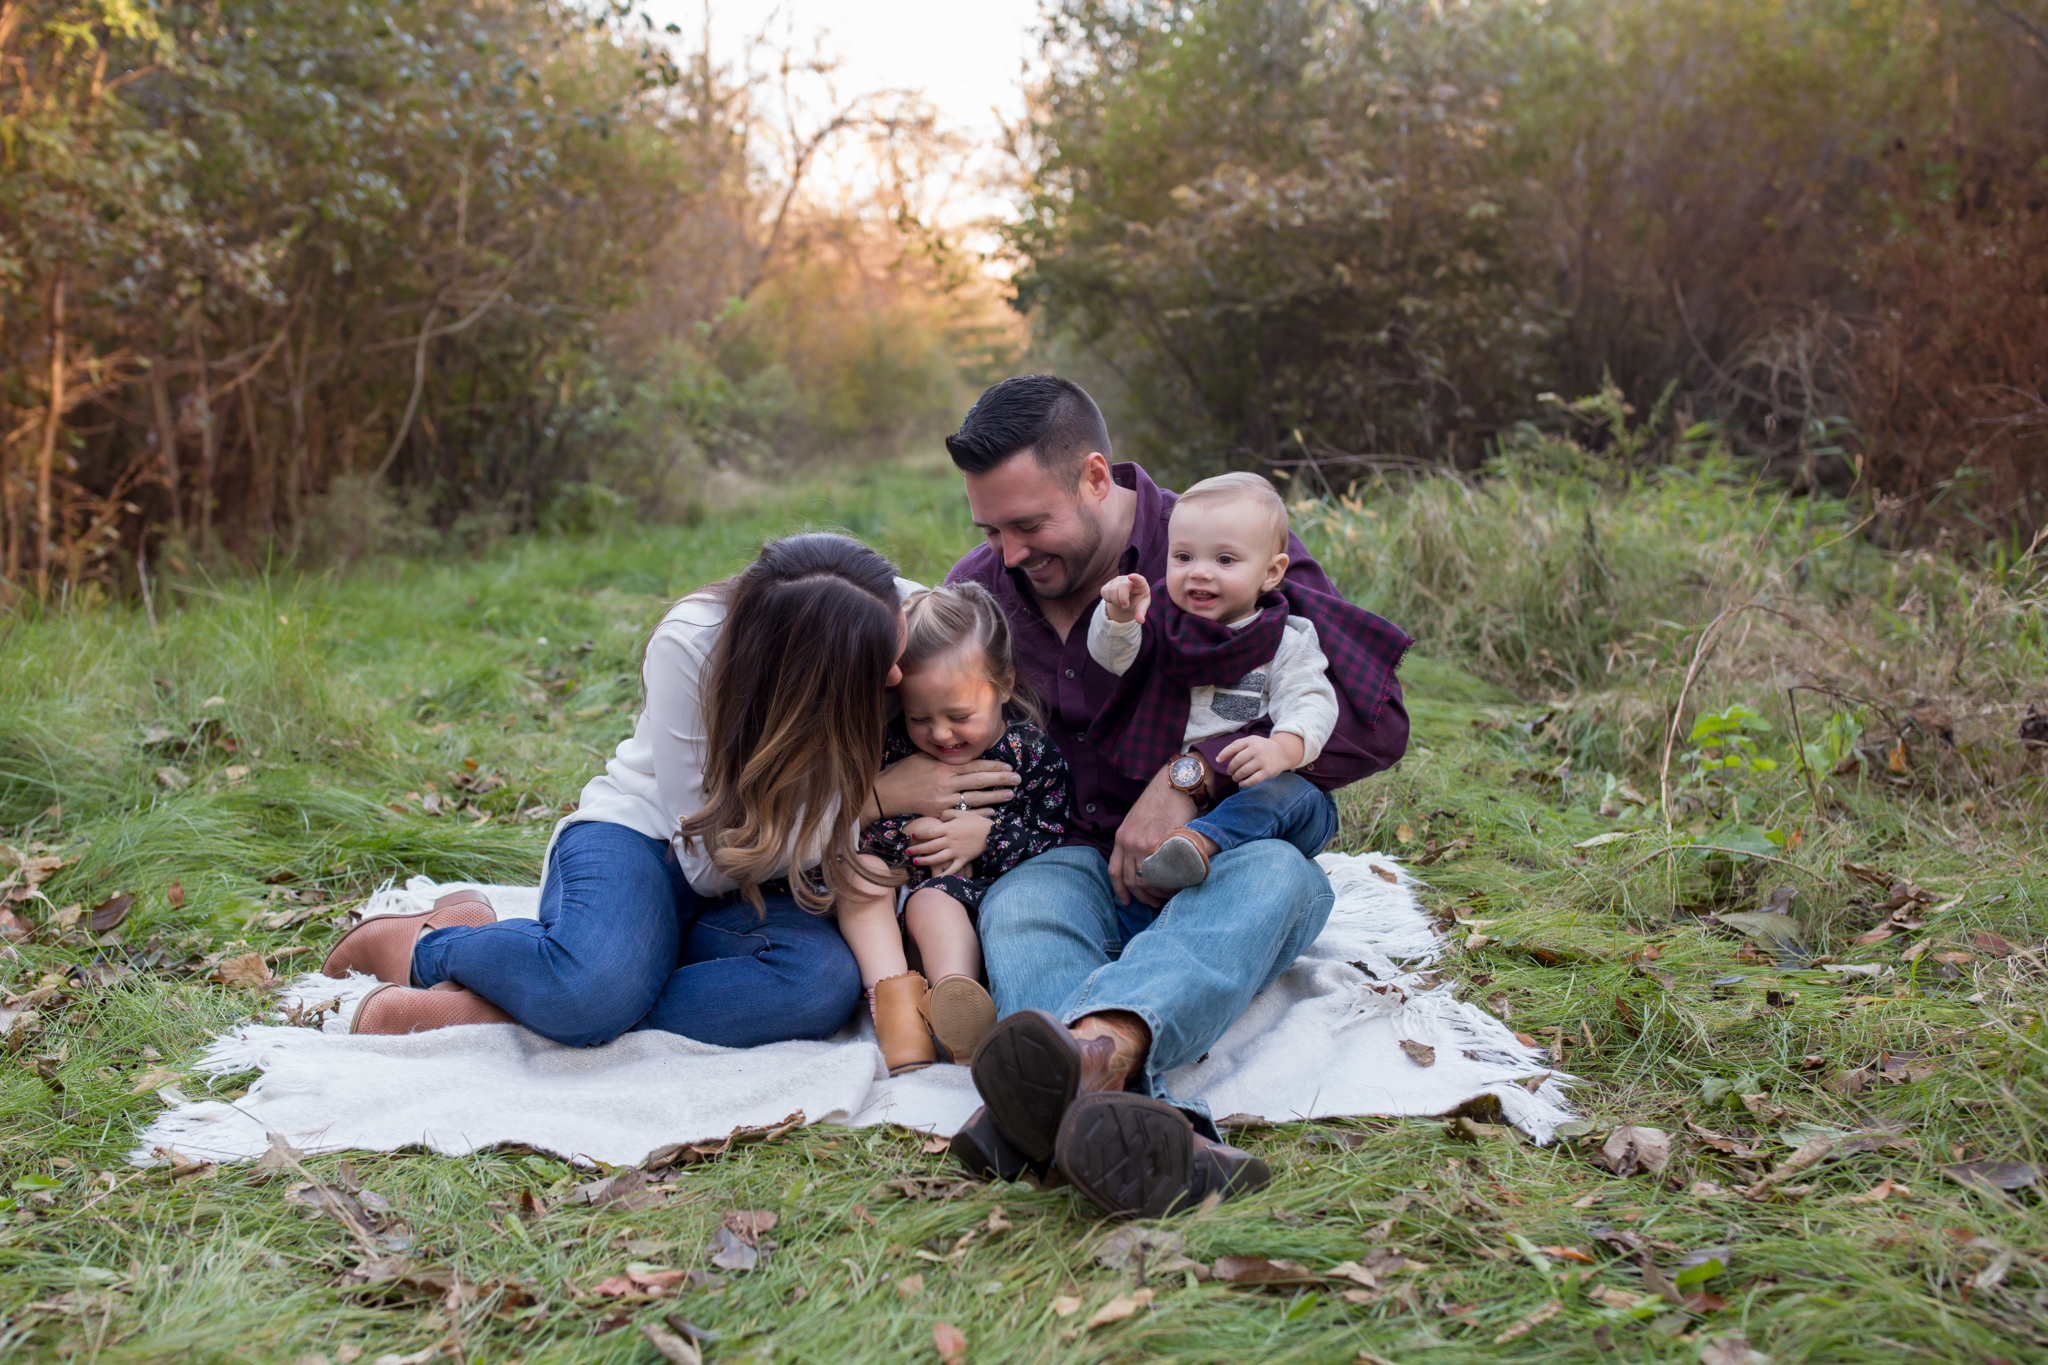 Hailey Family Fall Session, 2 kinds, family poses with young kids, Cara Peterson Photography Rockford IL-4.jpg